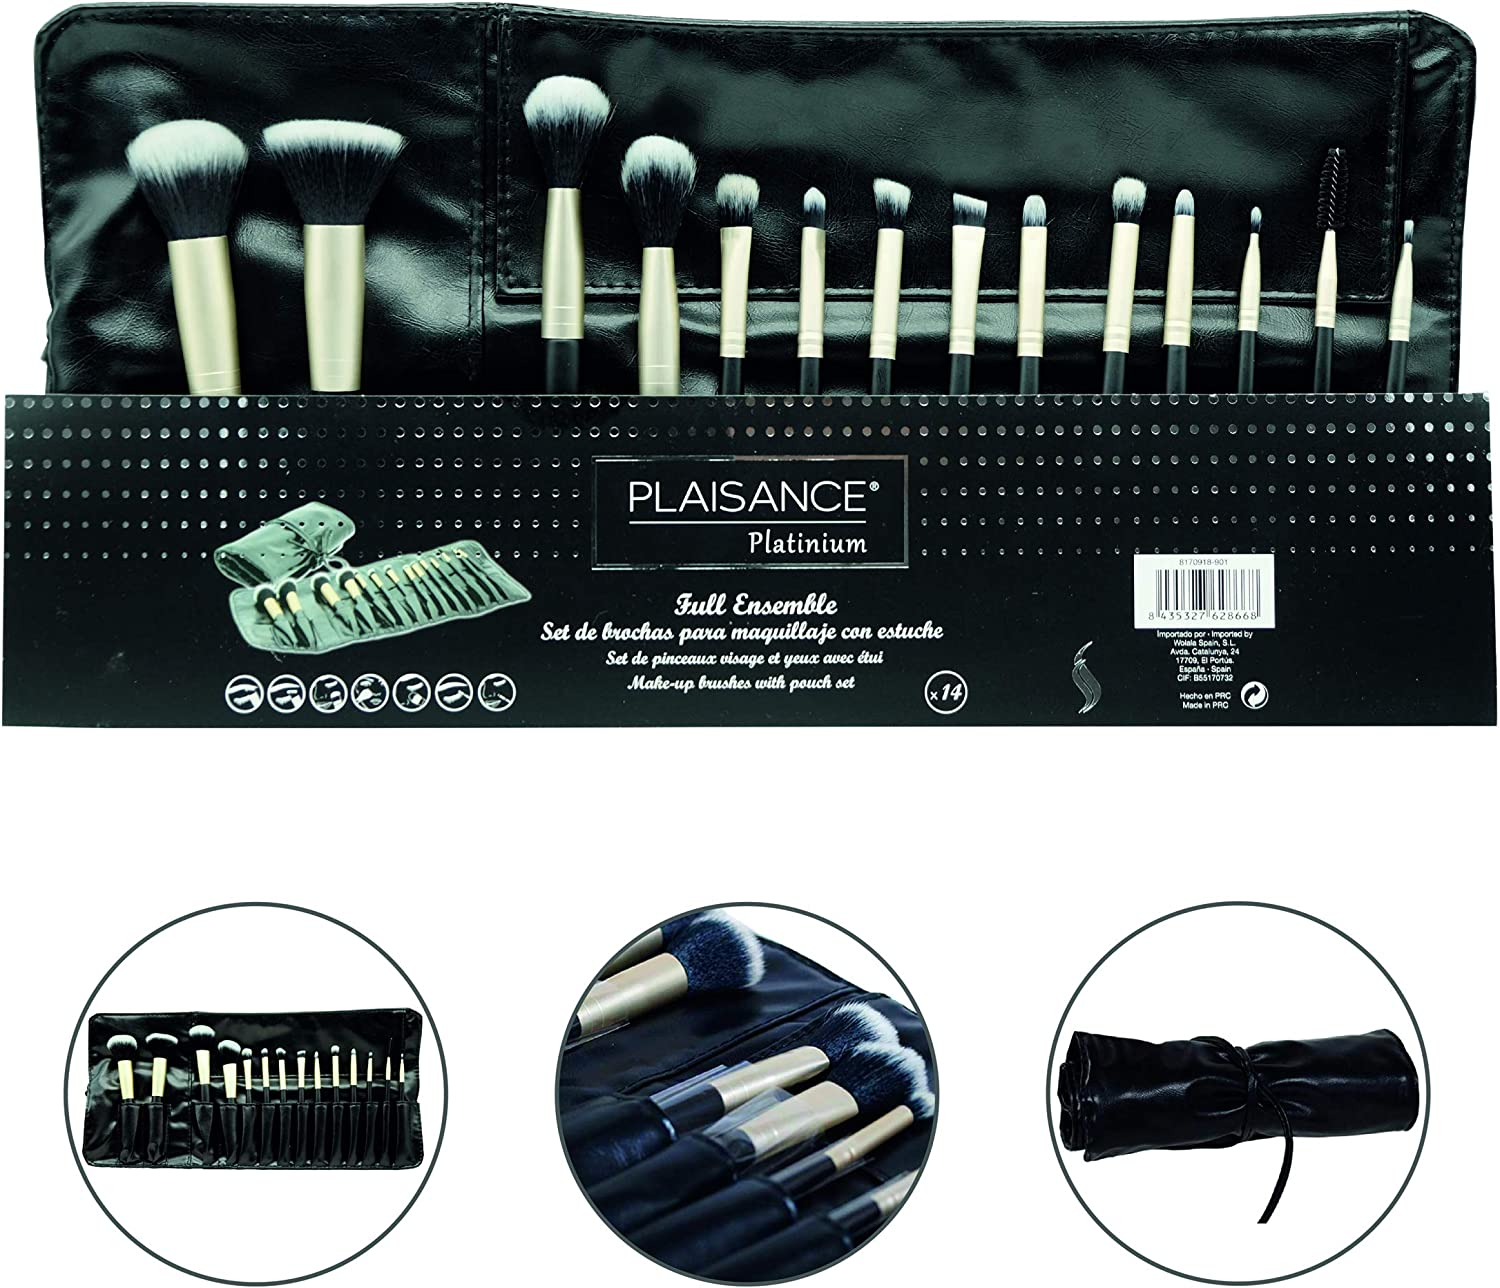 Plaisance Platinum. Full Ensemble. Set de Brochas para maquillaje profesional con estuche. 14 piezas. Color negro/dorado.: Amazon.es: Belleza